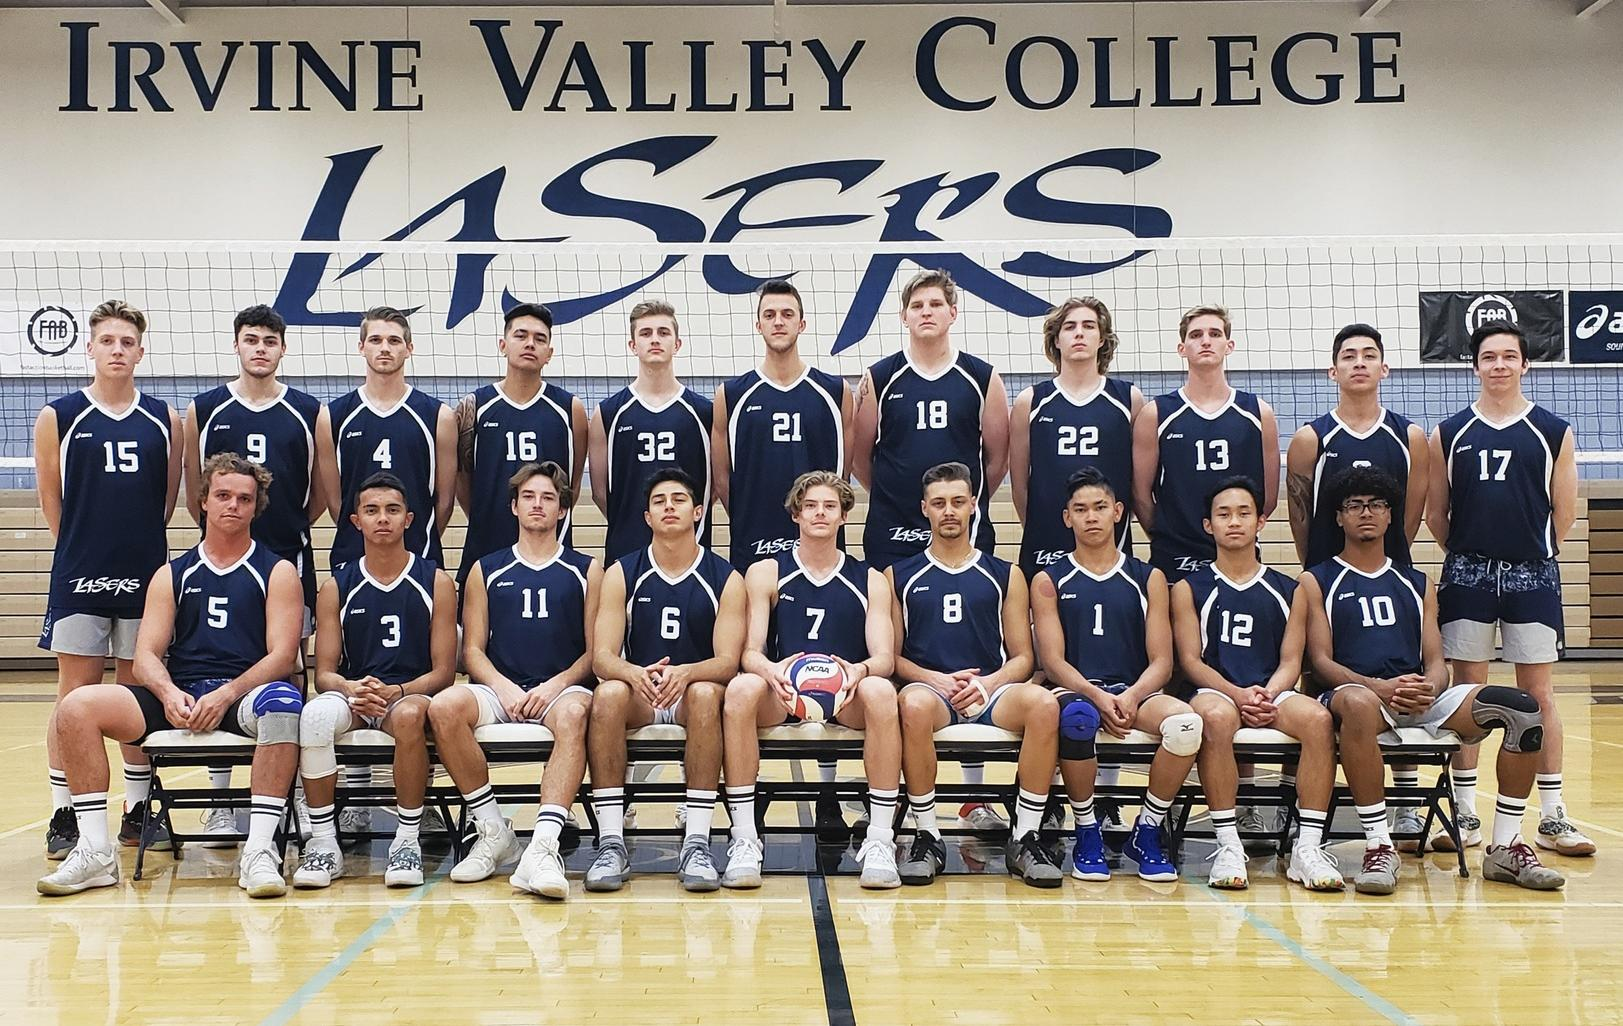 Men's volleyball team splits matches at Orange Coast Quad